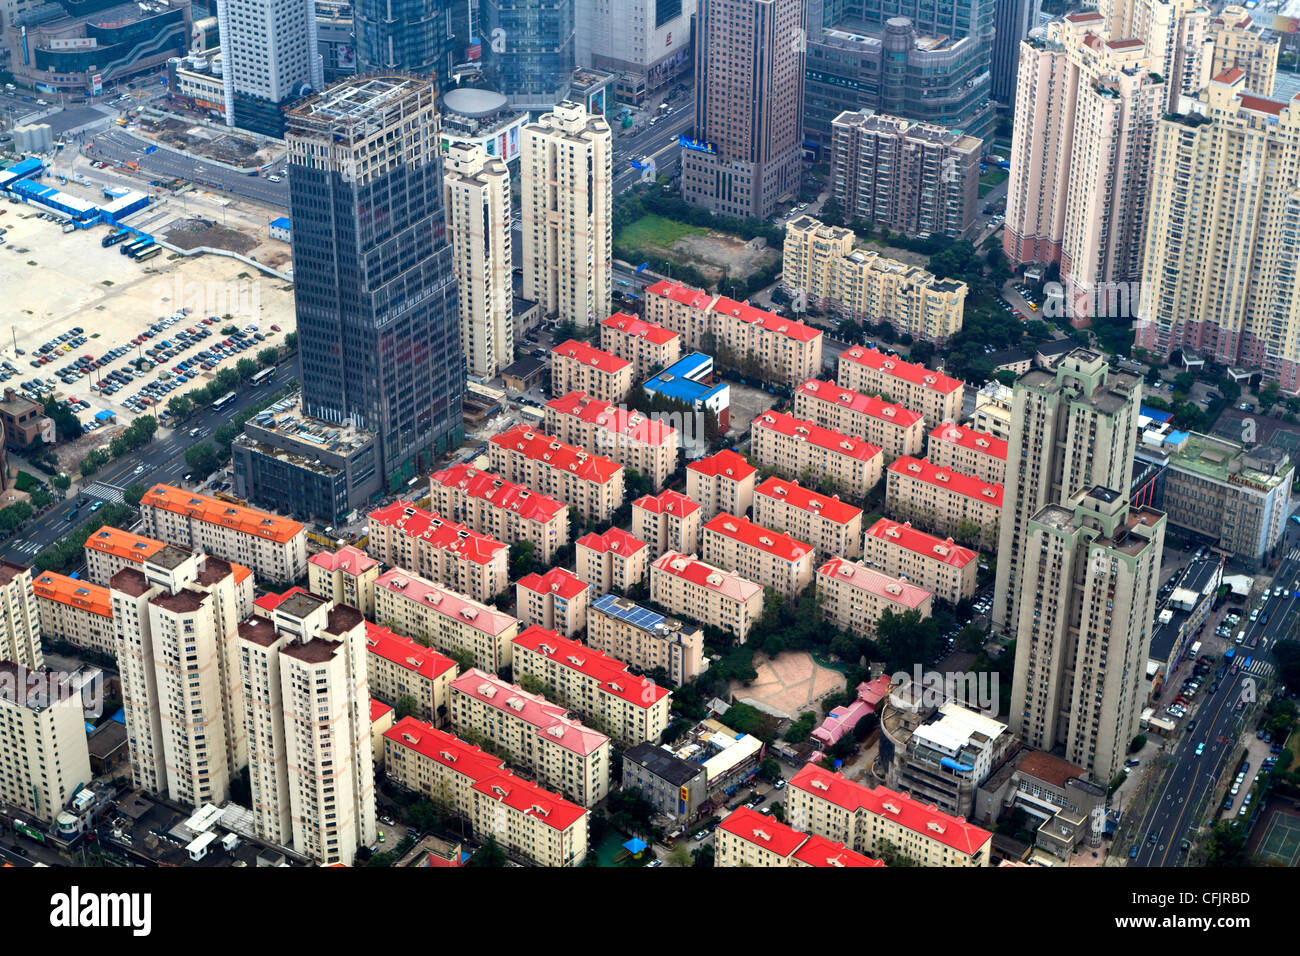 High view of urbanization development in Pudong, Shanghai, China, Asia - Stock Image